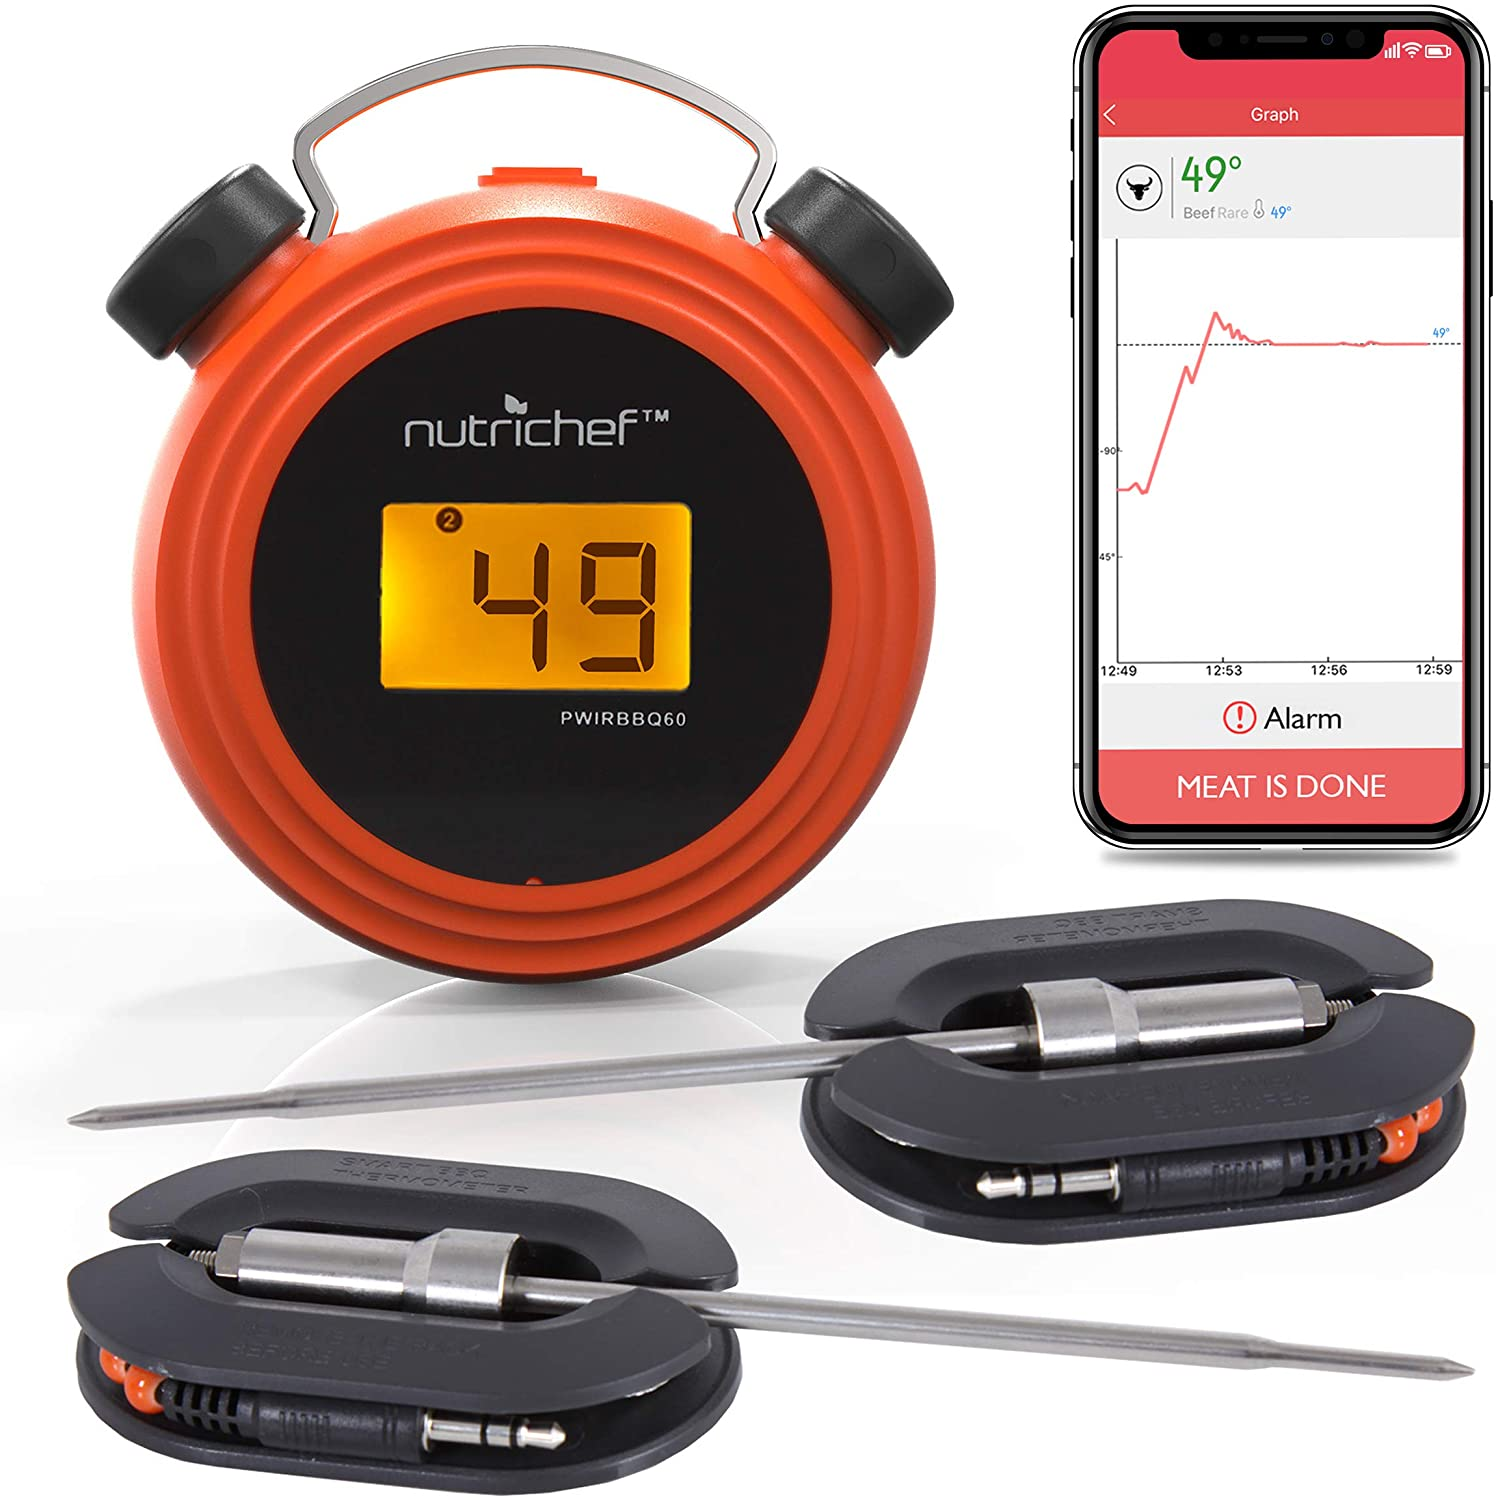 NutriChef Smart Wireless Thermometer